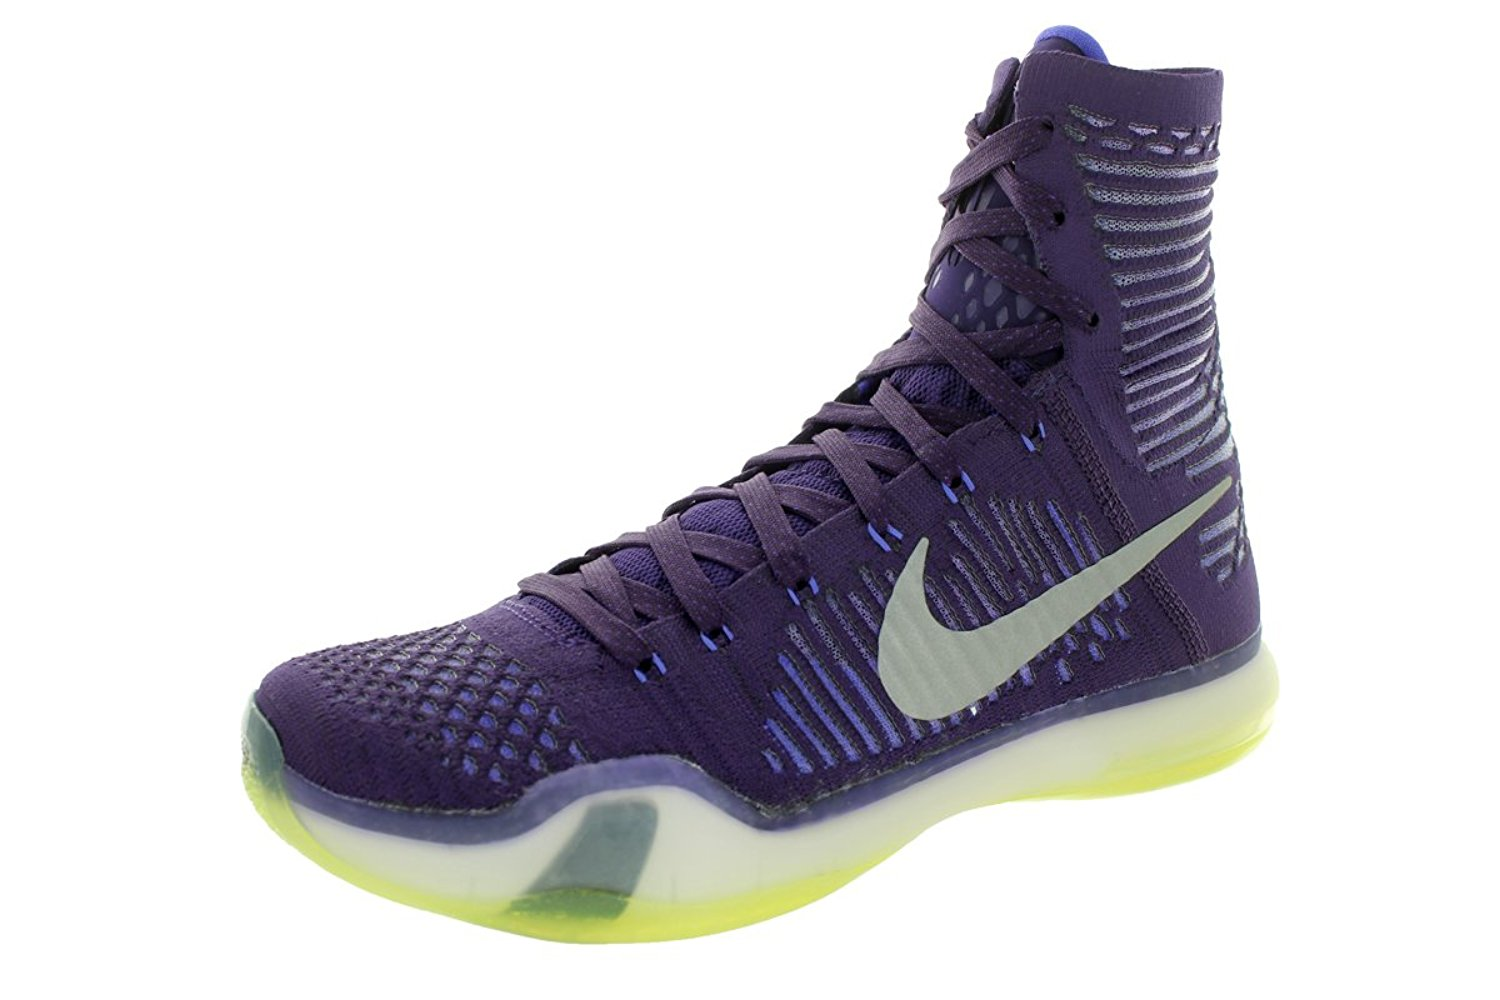 outlet store c2095 e2203 Get Quotations · Nike Kobe X Elite Mens Basketball Shoes